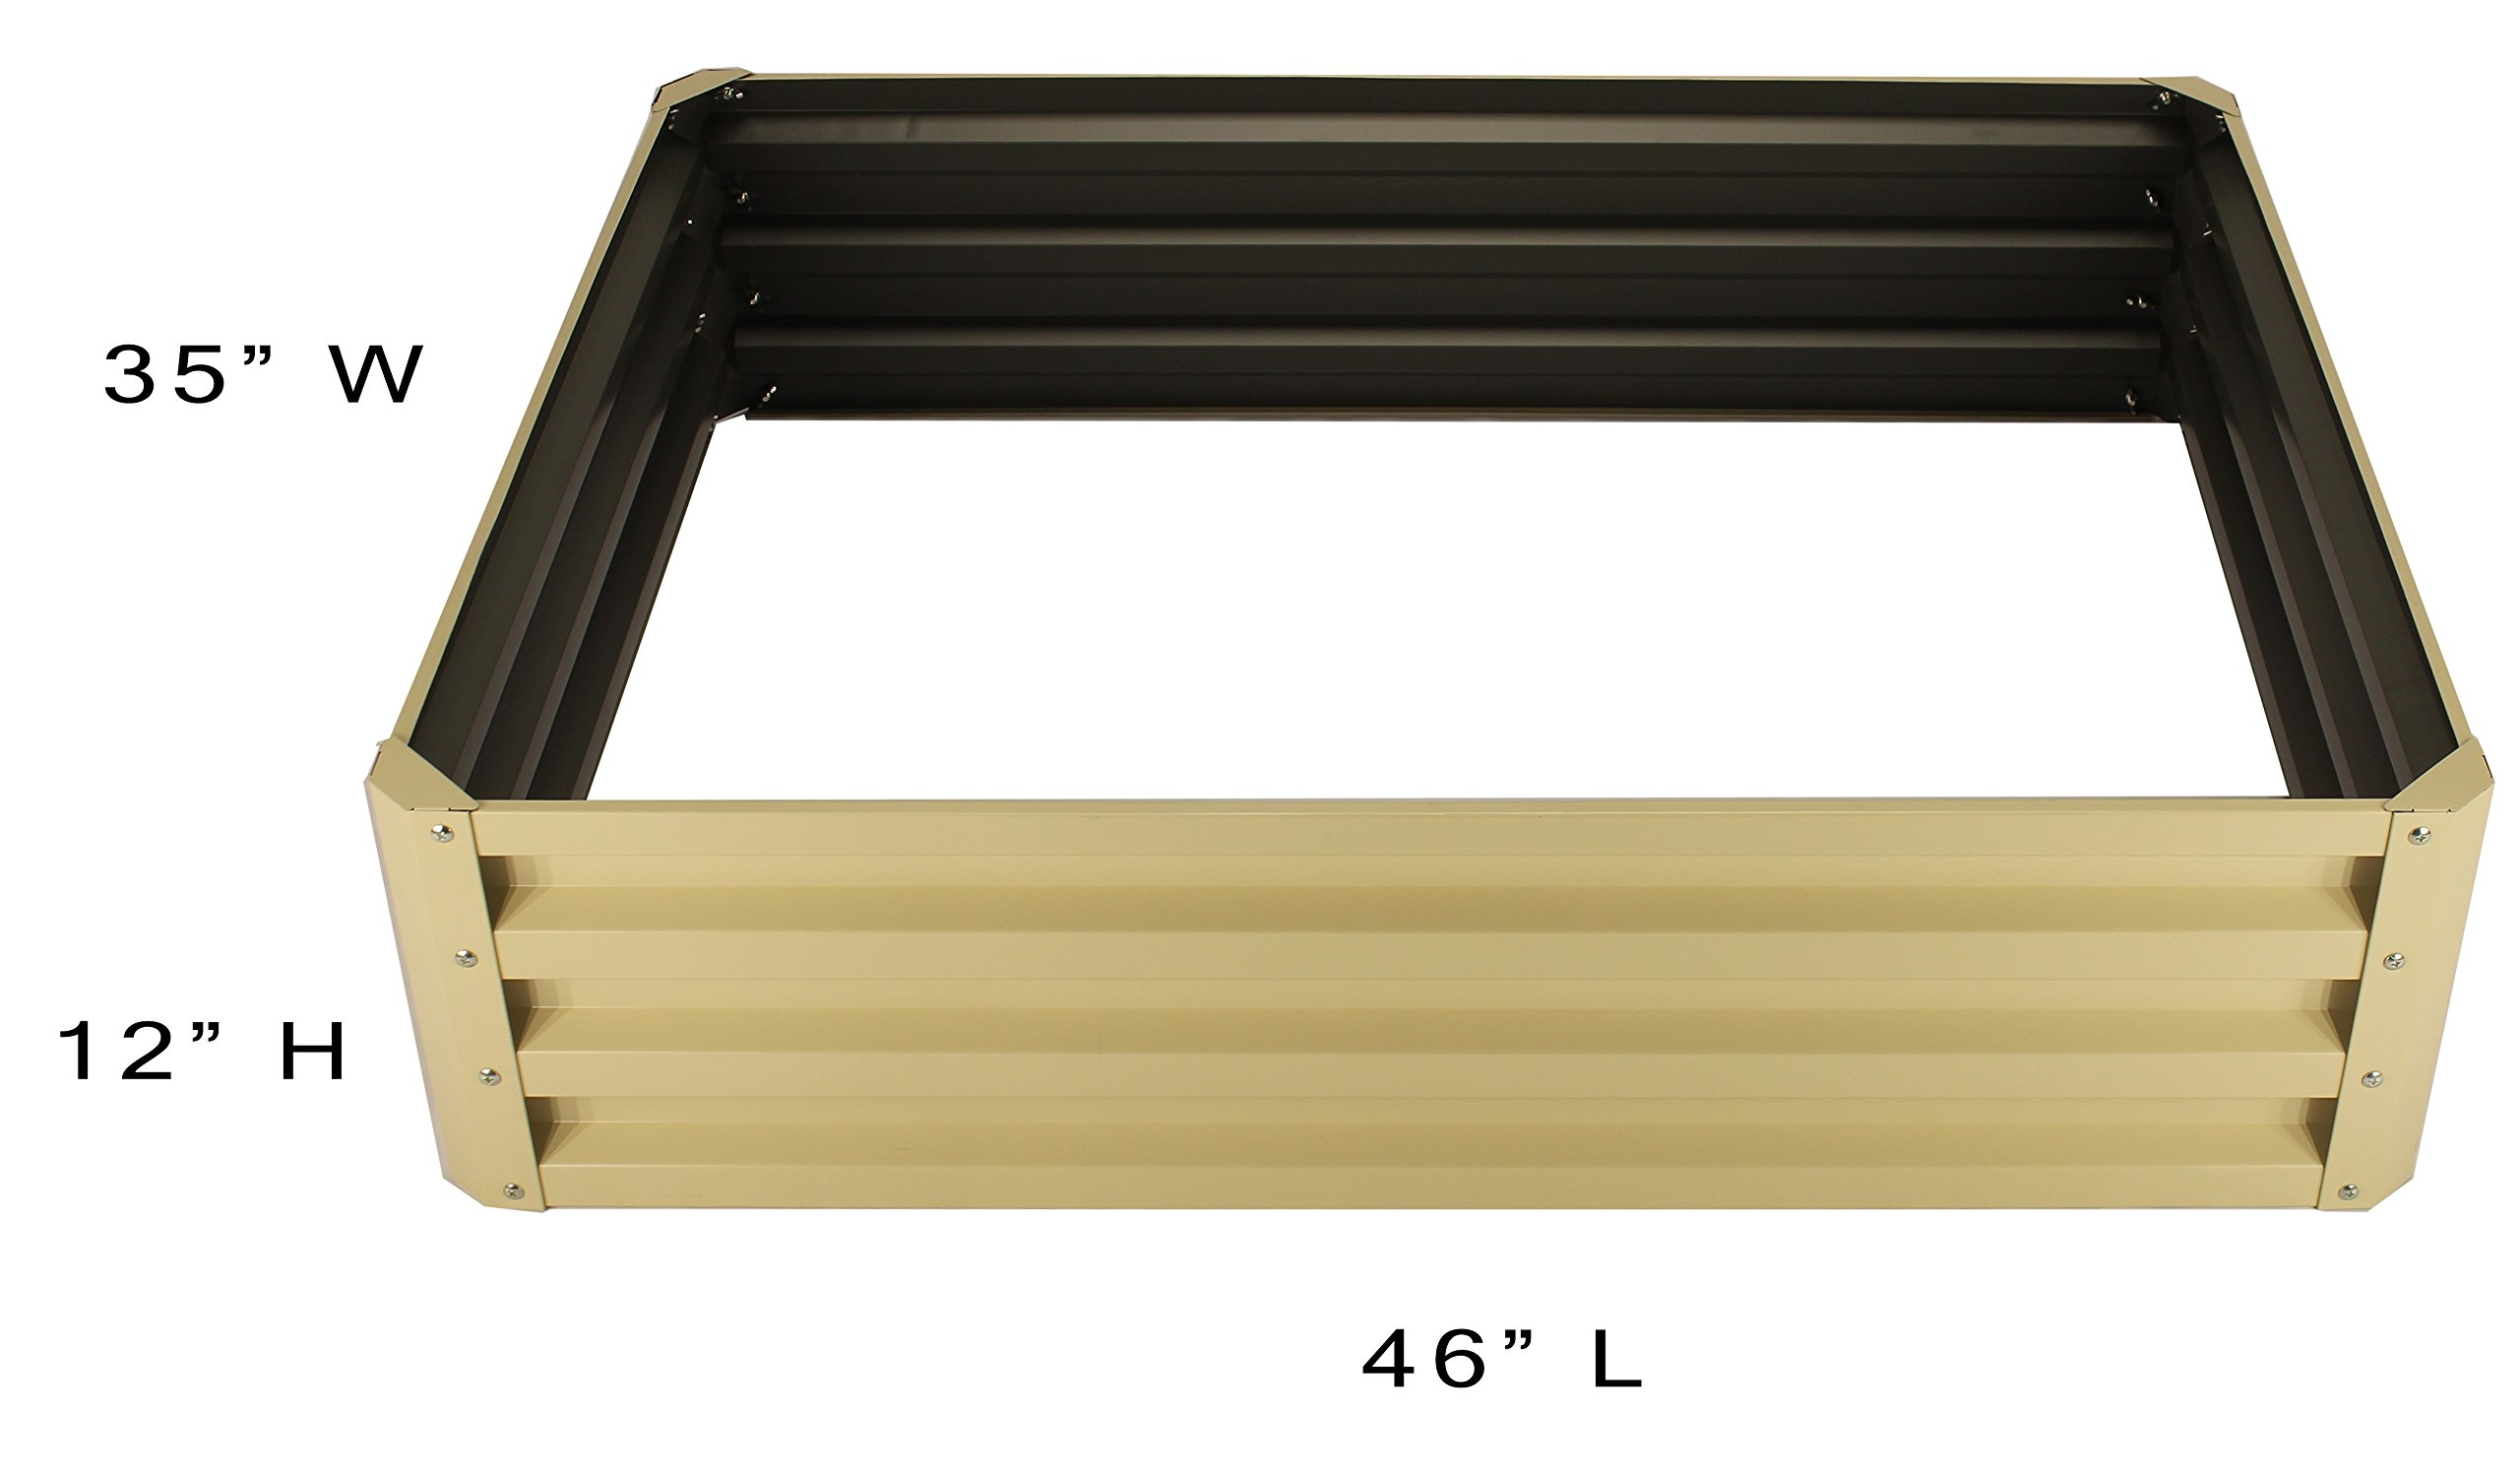 Metal Raised Garden Bed Kit - Elevated Planter Box For Growing Herbs, Vegetables, Flowers, and Succulents (1) 10 Beige Metal Raised Garden Bed Kit